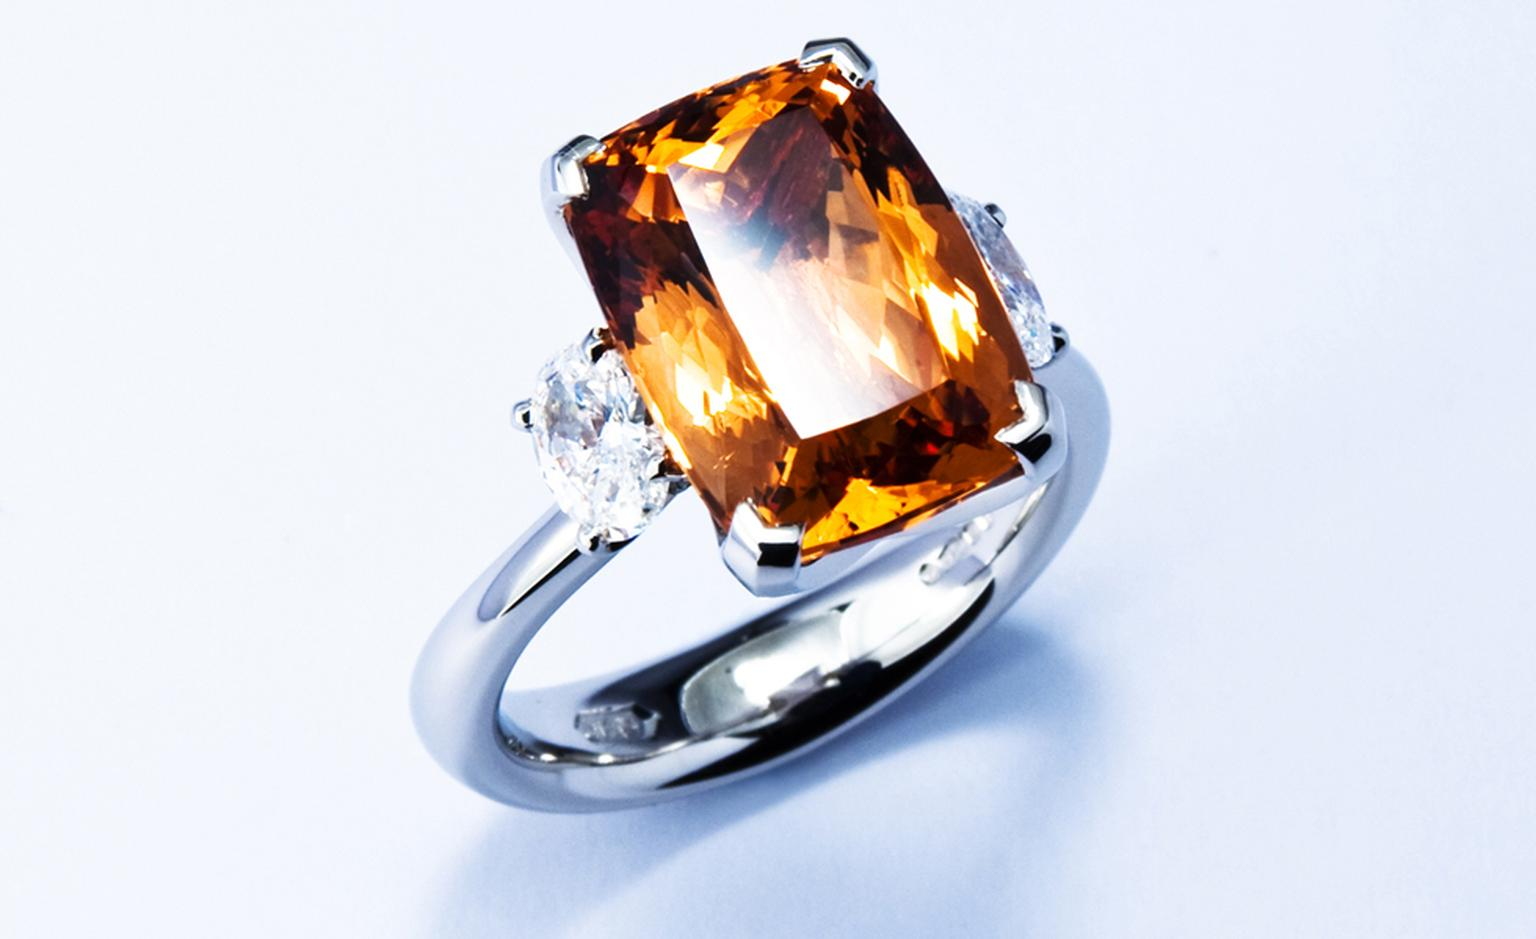 JON DIBBEN, Precious topaz and diamond ring